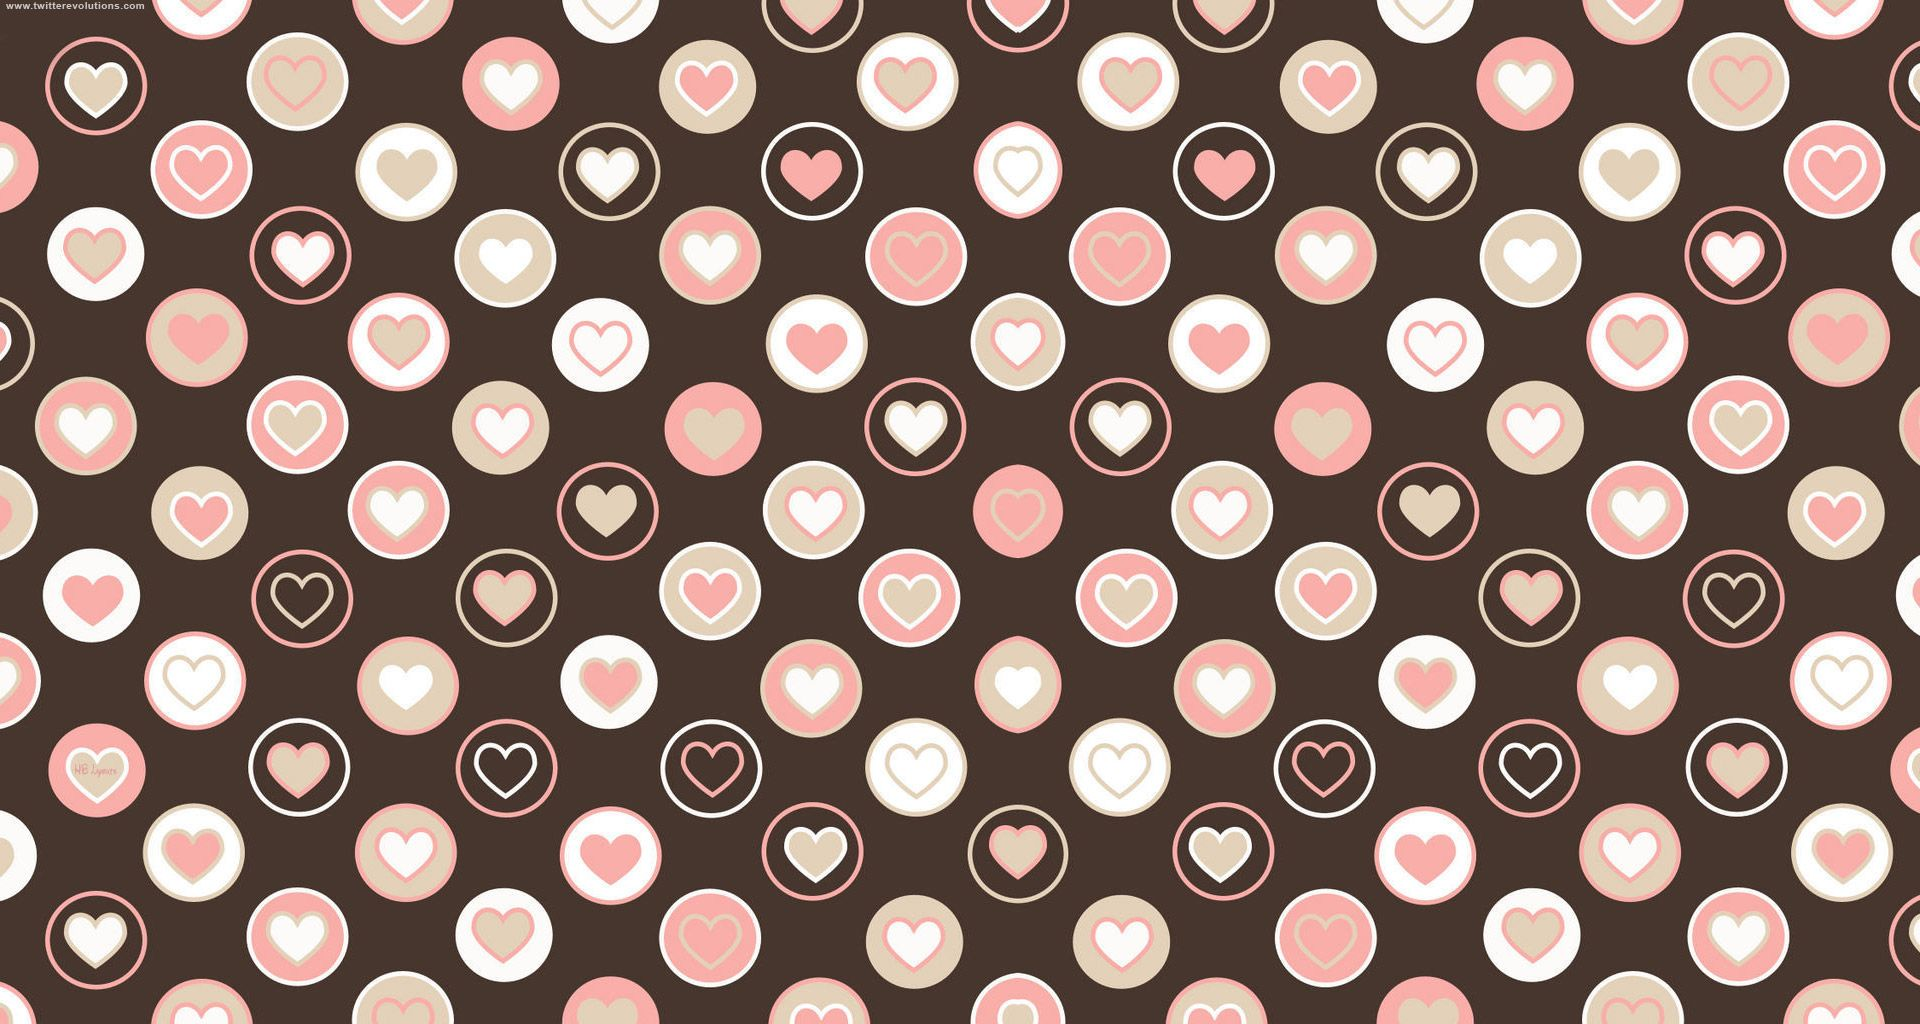 Tiled pink hearts twitter background twitter backgrounds cake tiled pink hearts twitter background twitter backgrounds voltagebd Image collections